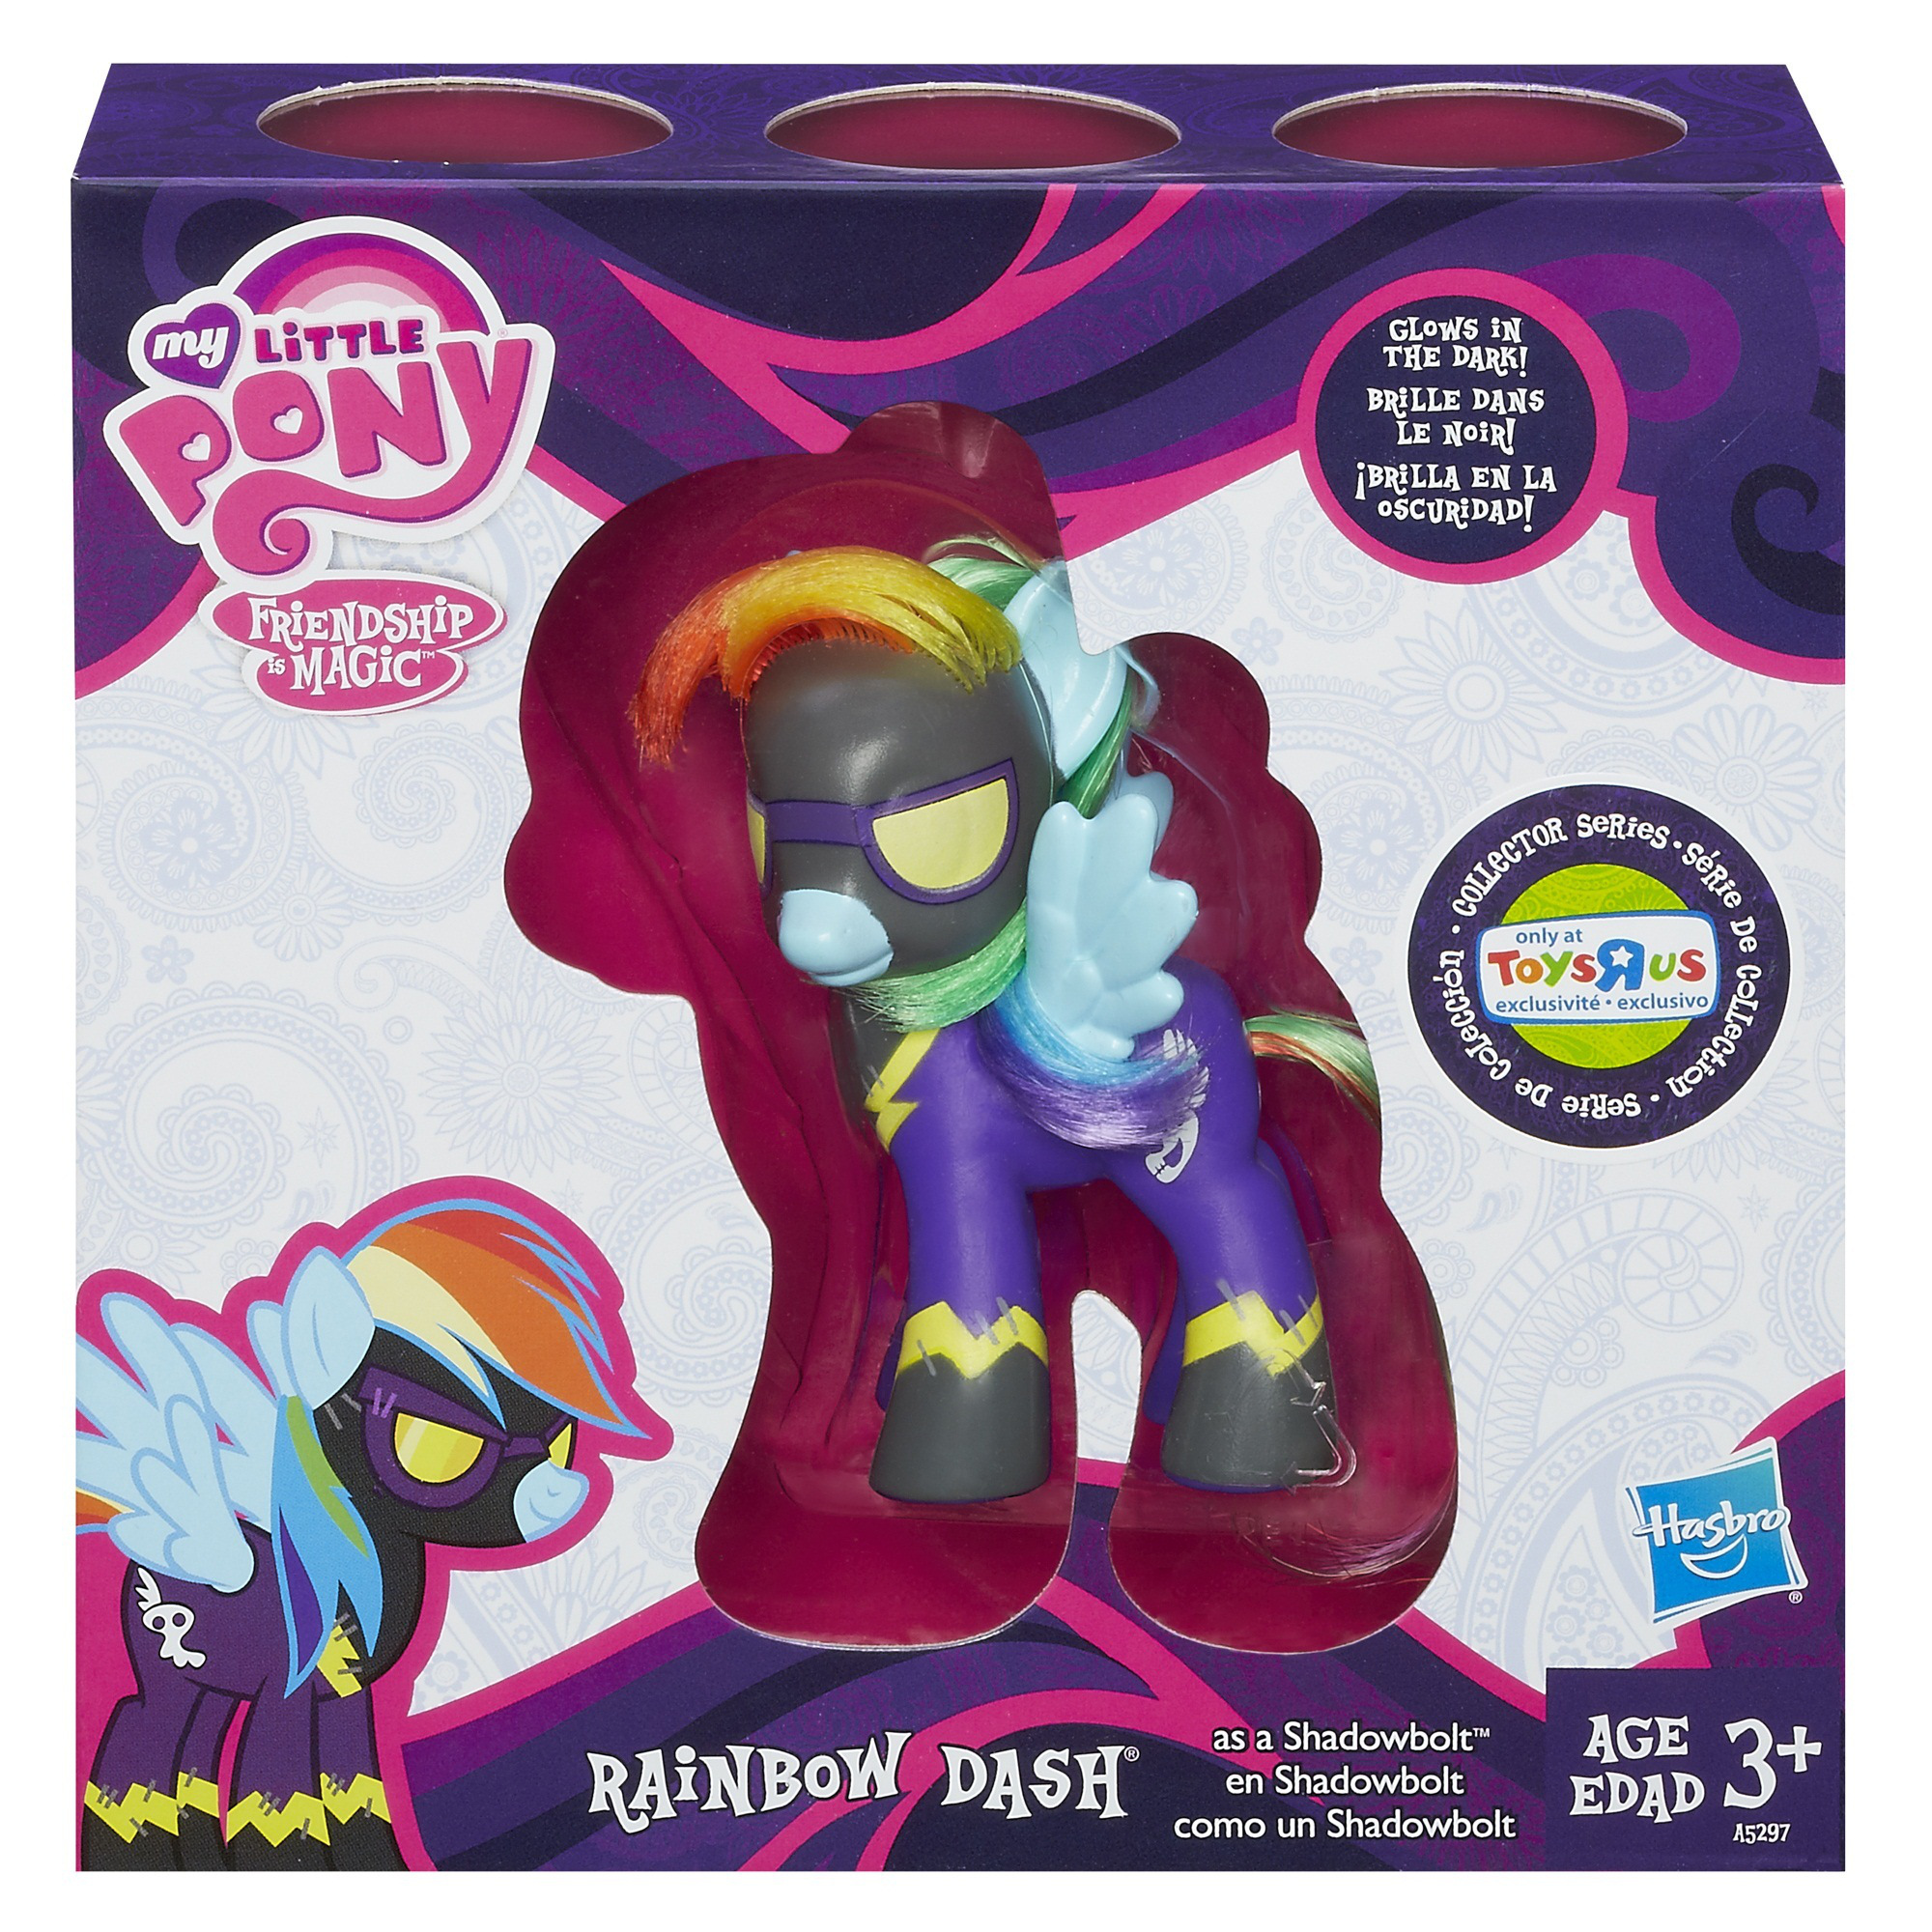 http://vignette1.wikia.nocookie.net/mlp/images/6/6e/MLP_Collector_Series_Shadowbolt_Rainbow_Dash_toy_and_packaging.jpg/revision/latest?cb=20150319224411